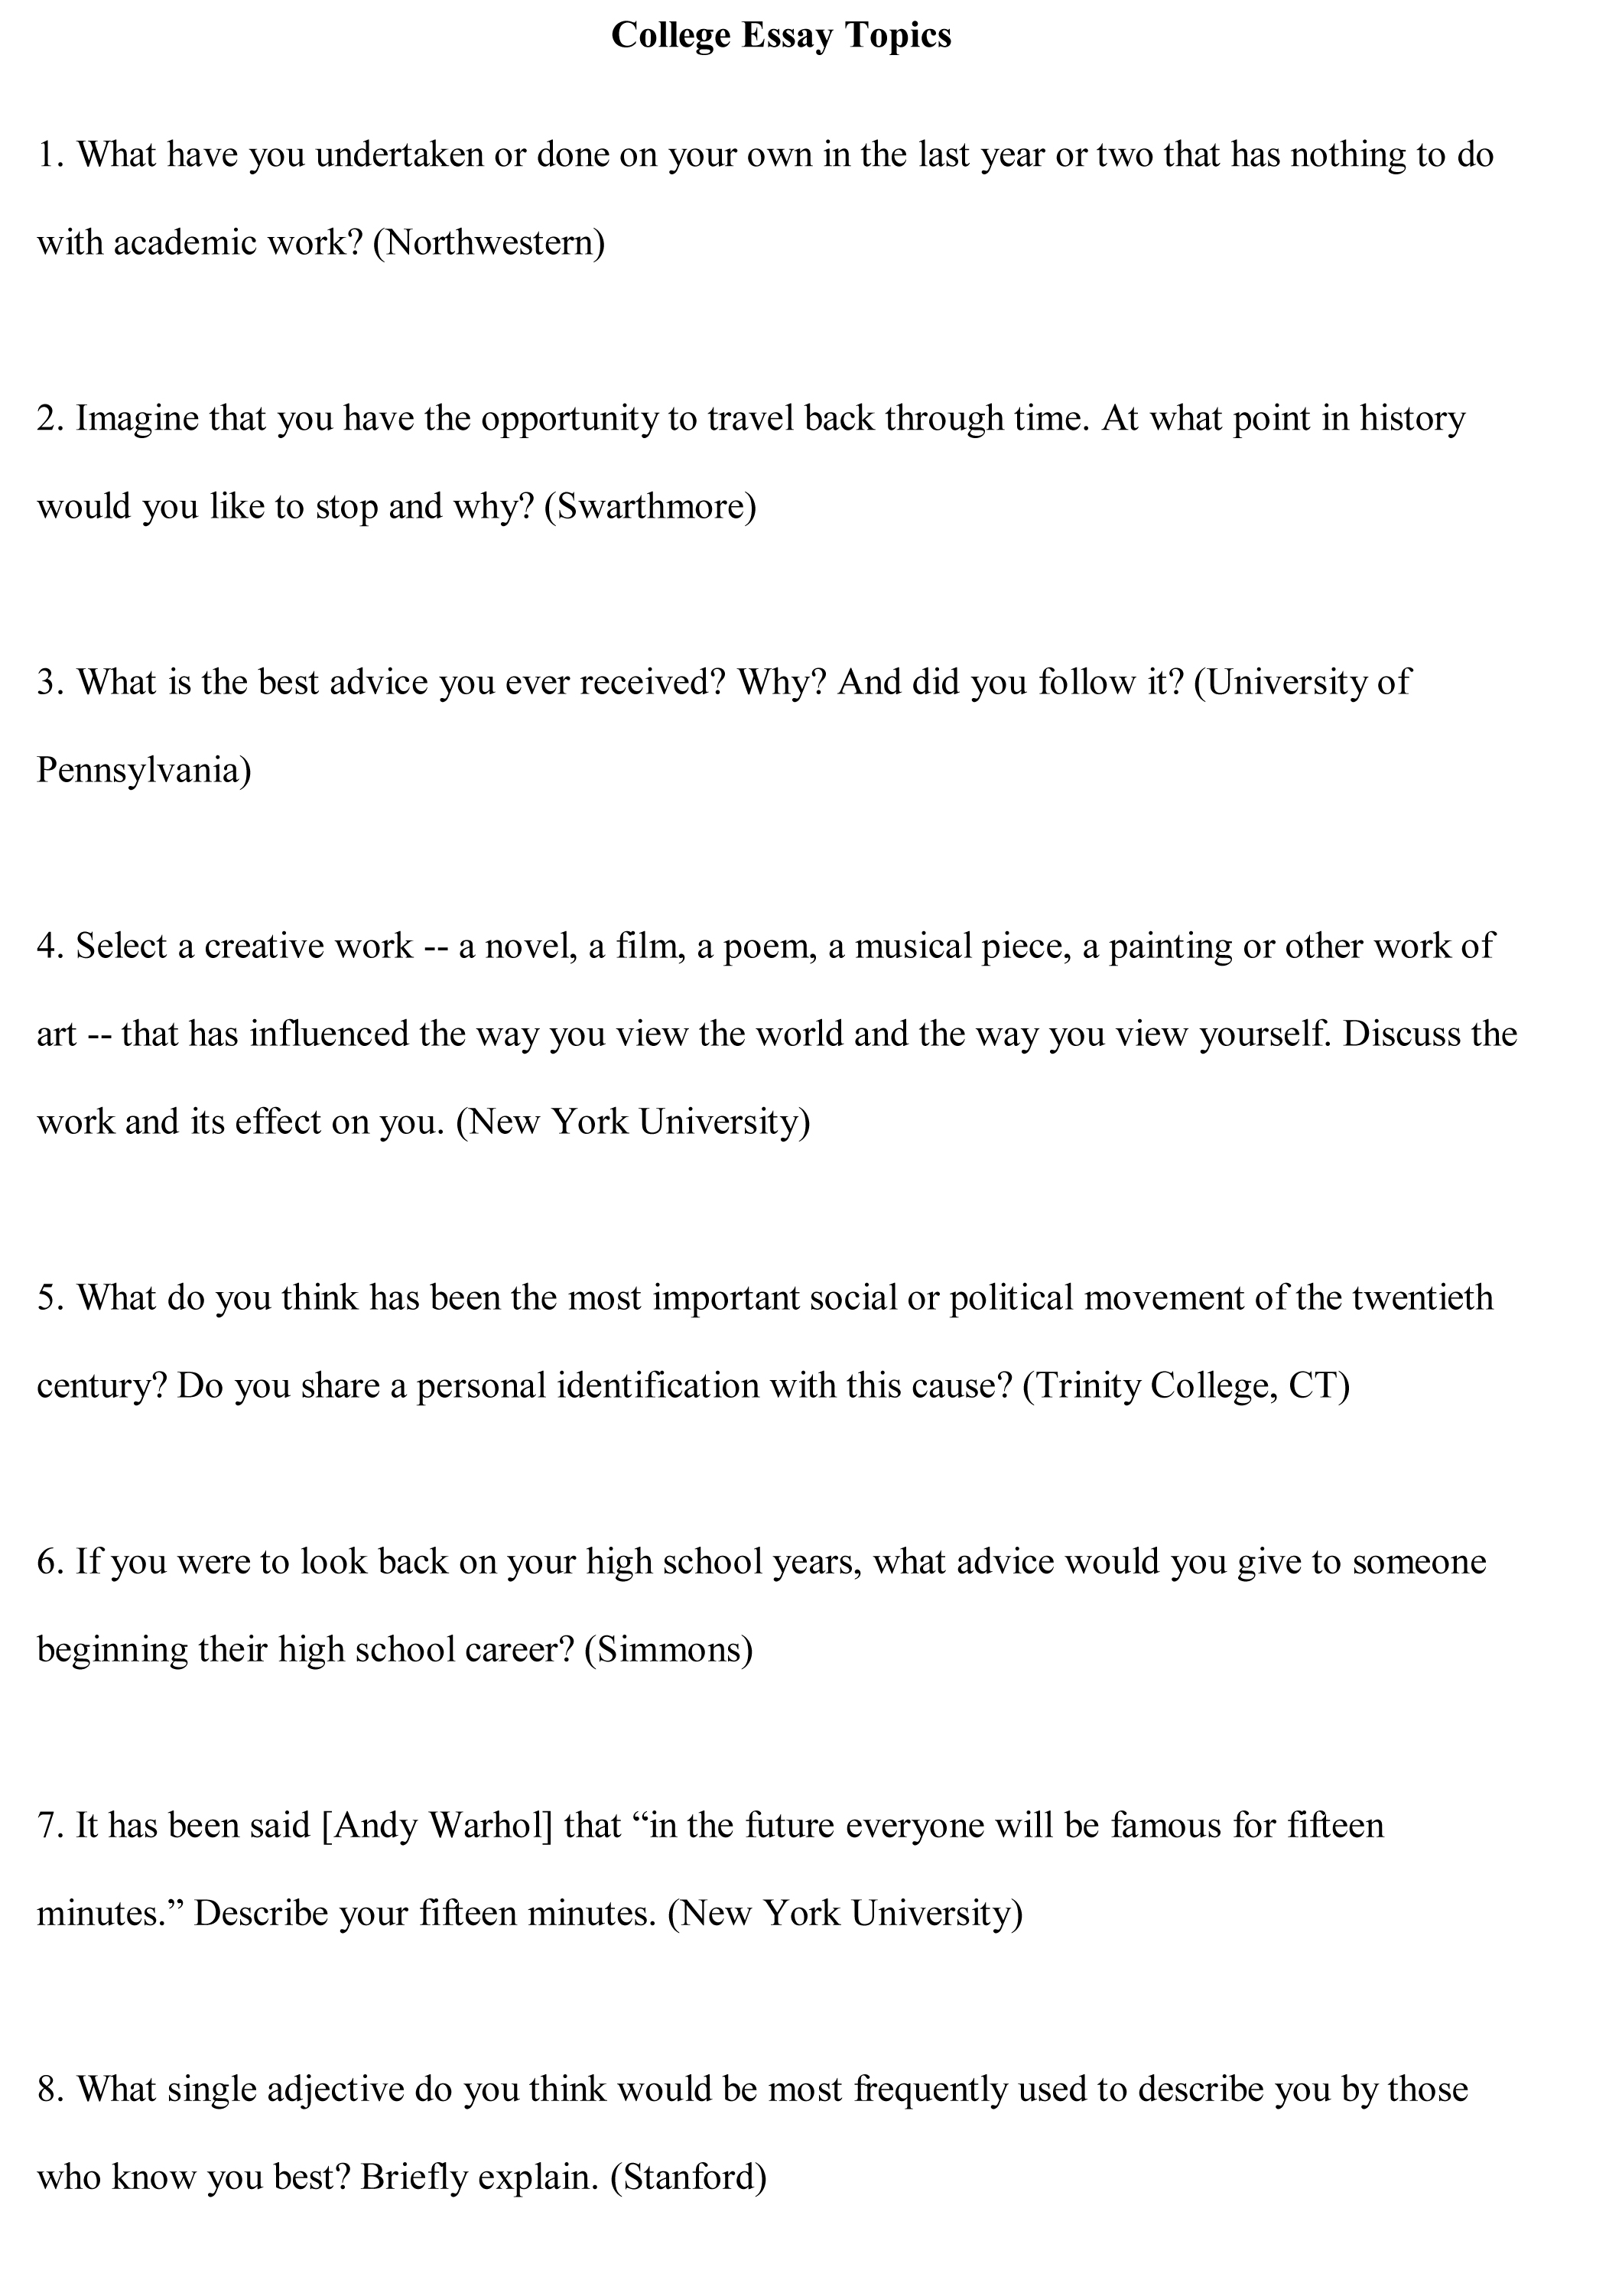 008 Top Essay Topics For College Free Sample1cbu003d Unbelievable 10 Full